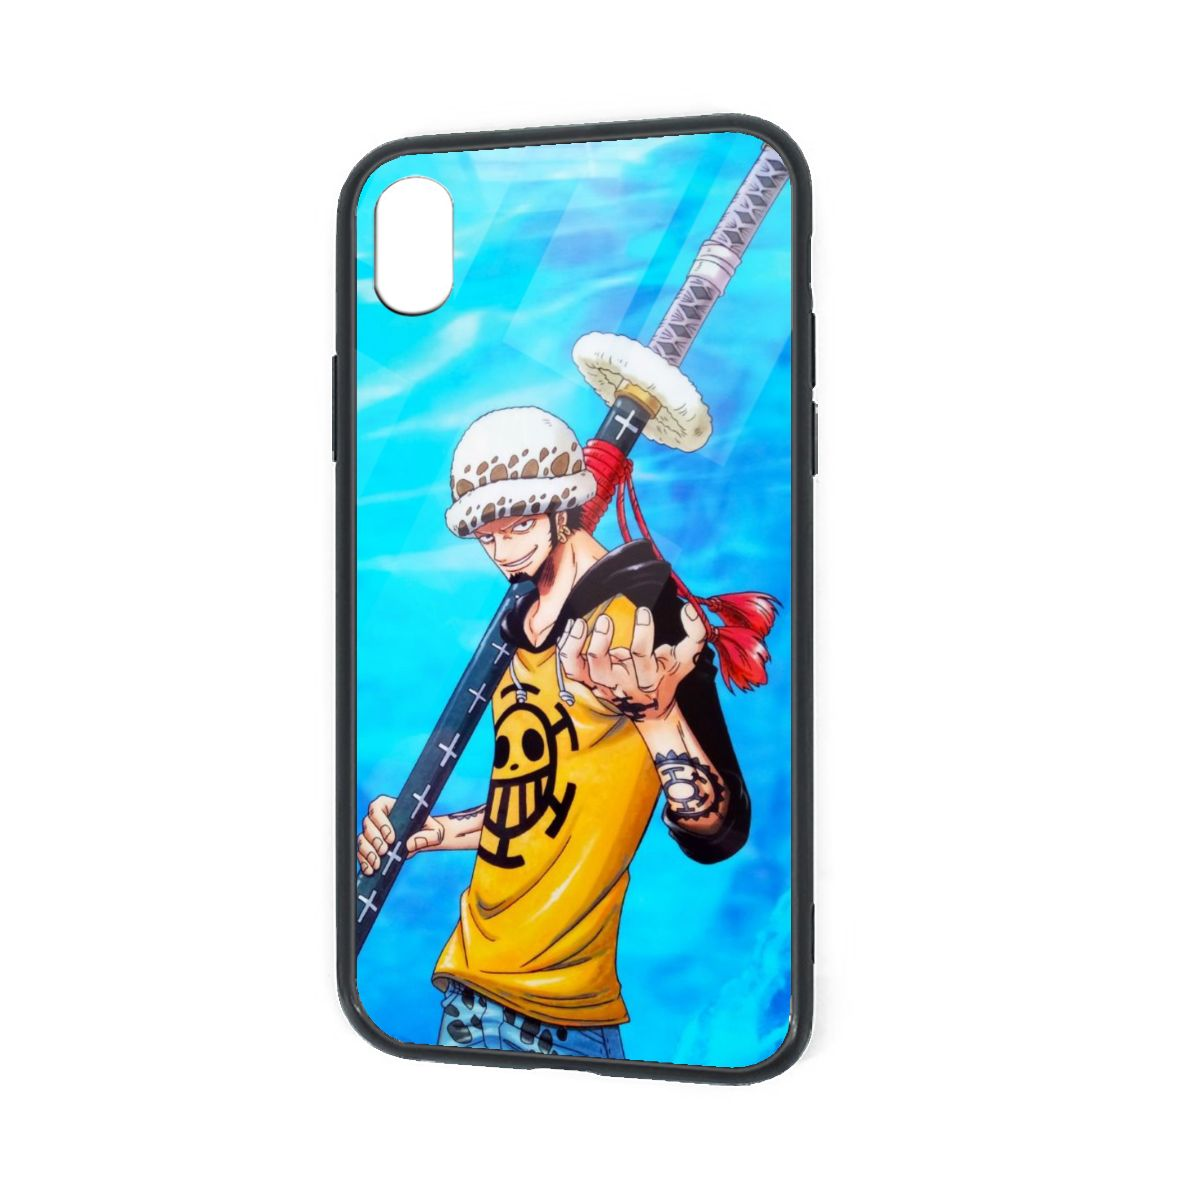 IPhone X XR XS 6 7 8 Plus Soft TPU Case Cover Doctor Trafalgar Law